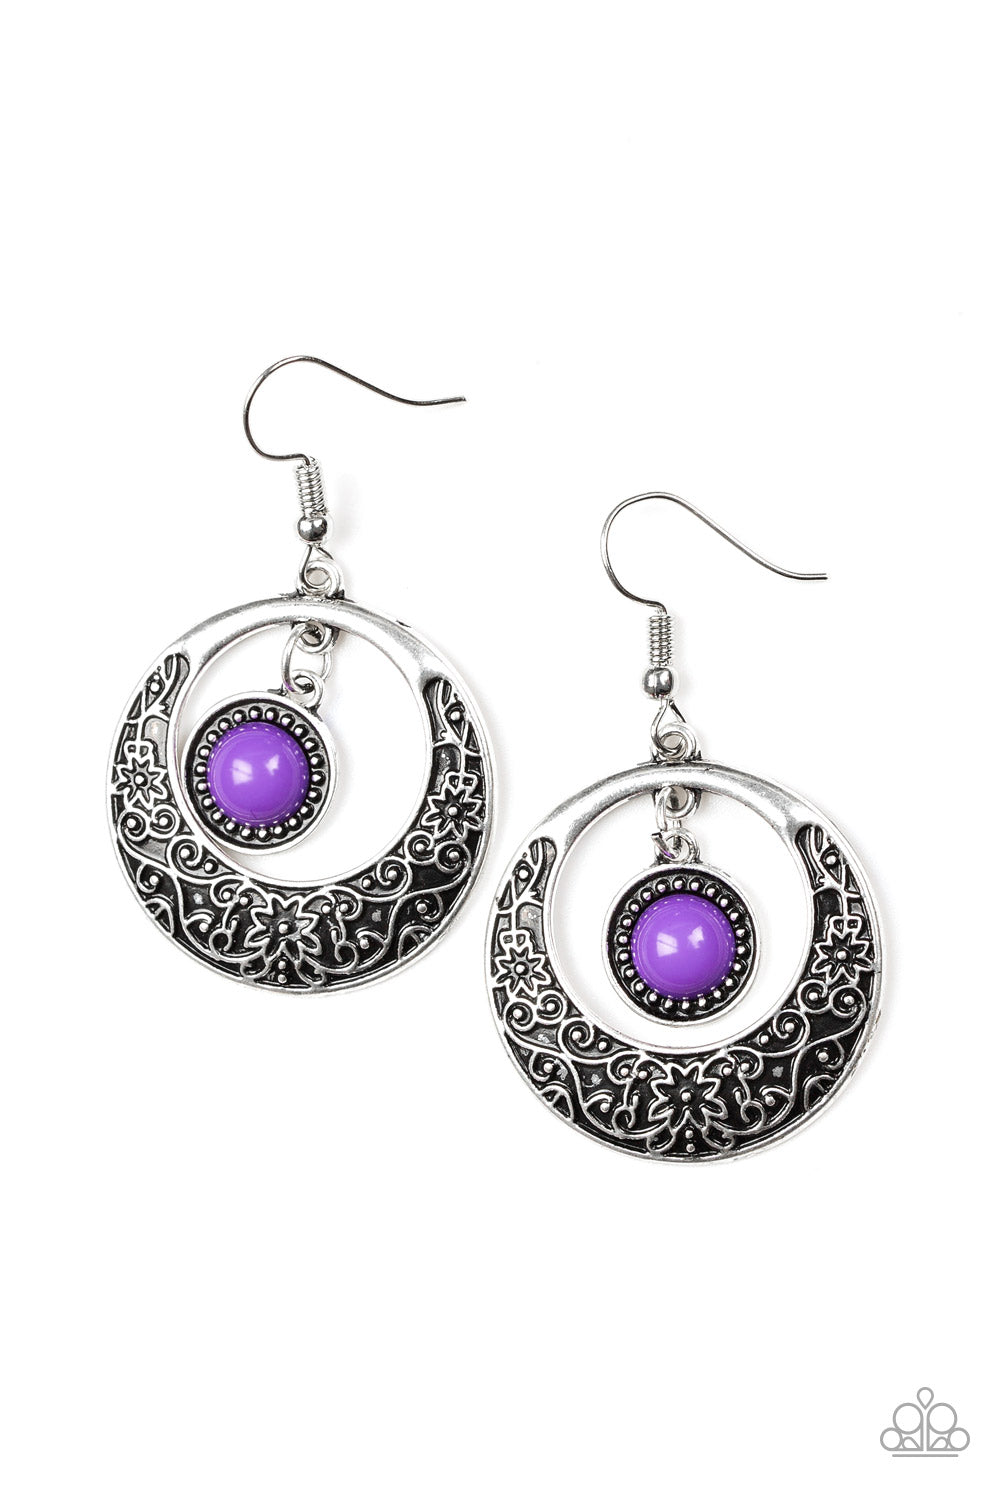 five-dollar-jewelry-wandering-waikiki-purple-earrings-paparazzi-accessories